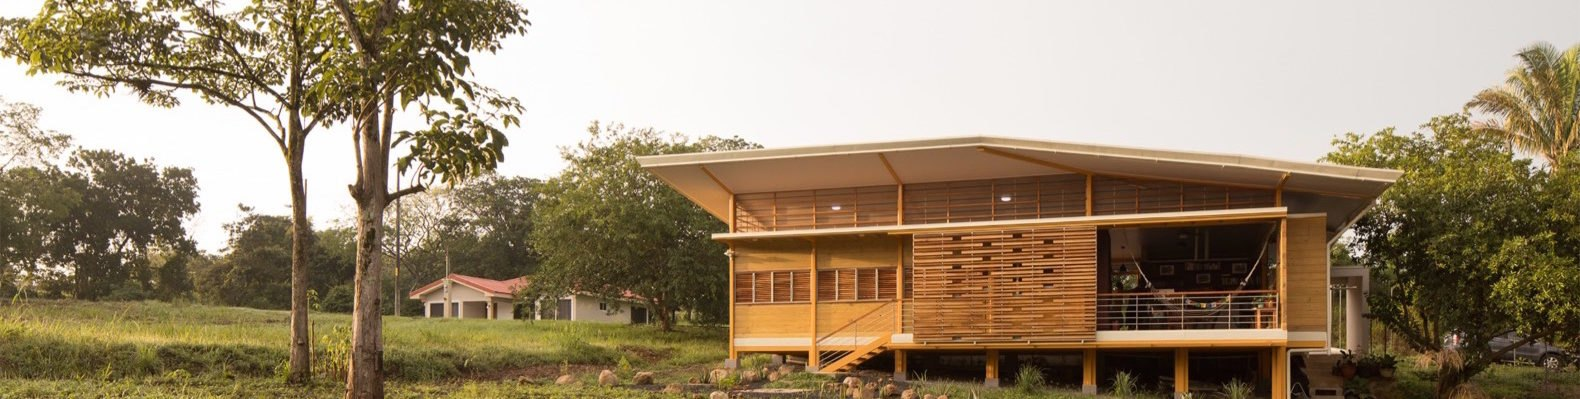 timber home on stilts